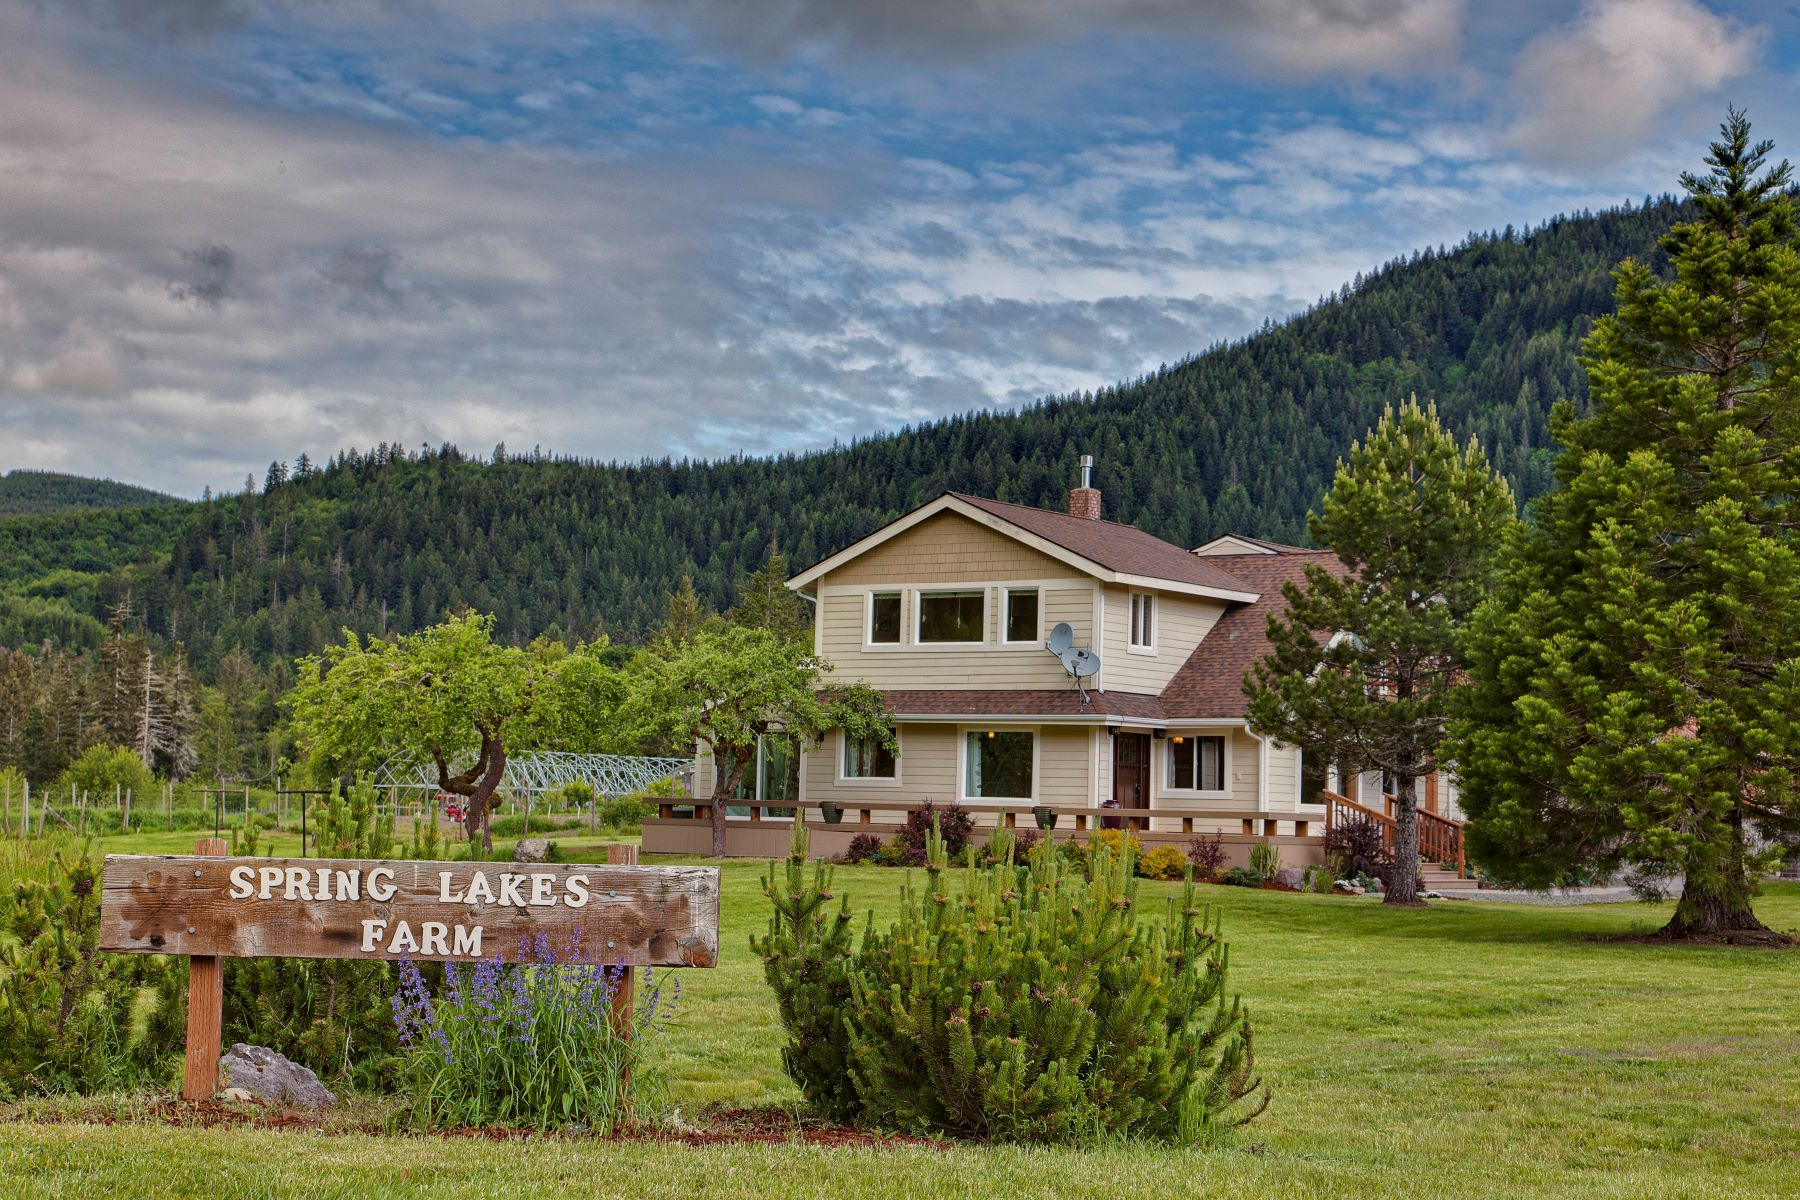 Maison unifamiliale pour l Vente à Spring Lakes Farm 237477 W Highway 101 Port Angeles, Washington 98363 États-Unis